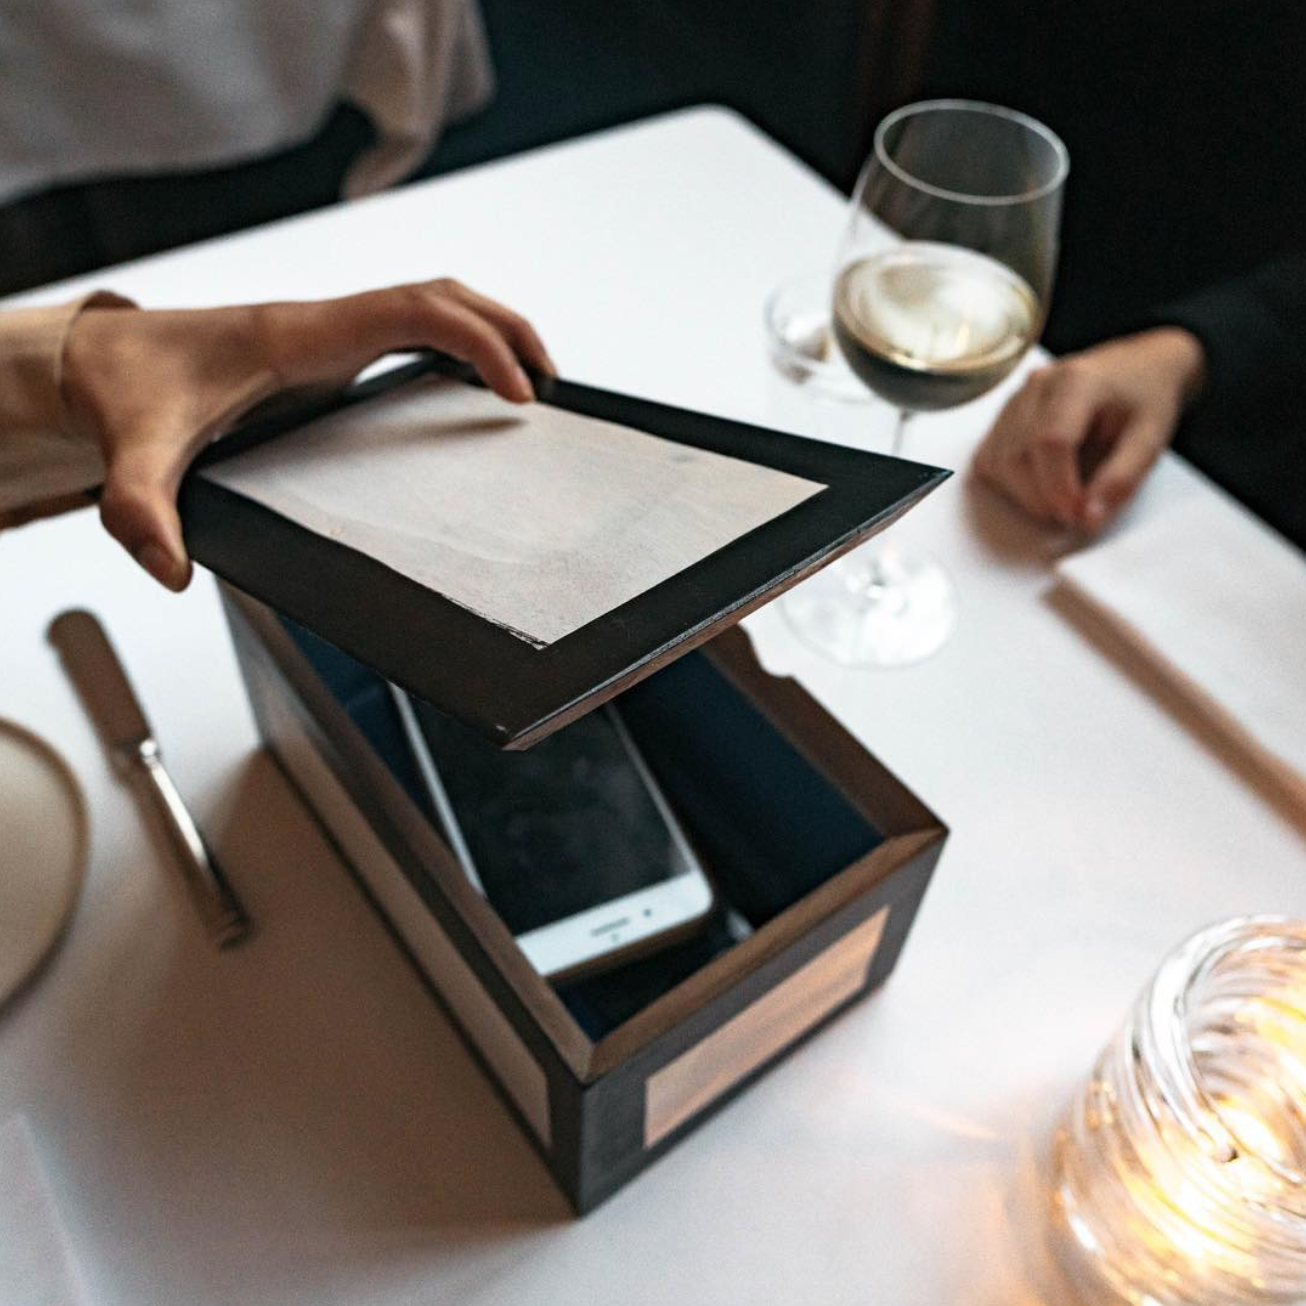 Eleven Madison Park Offers A Box To Hide Away Your Phone